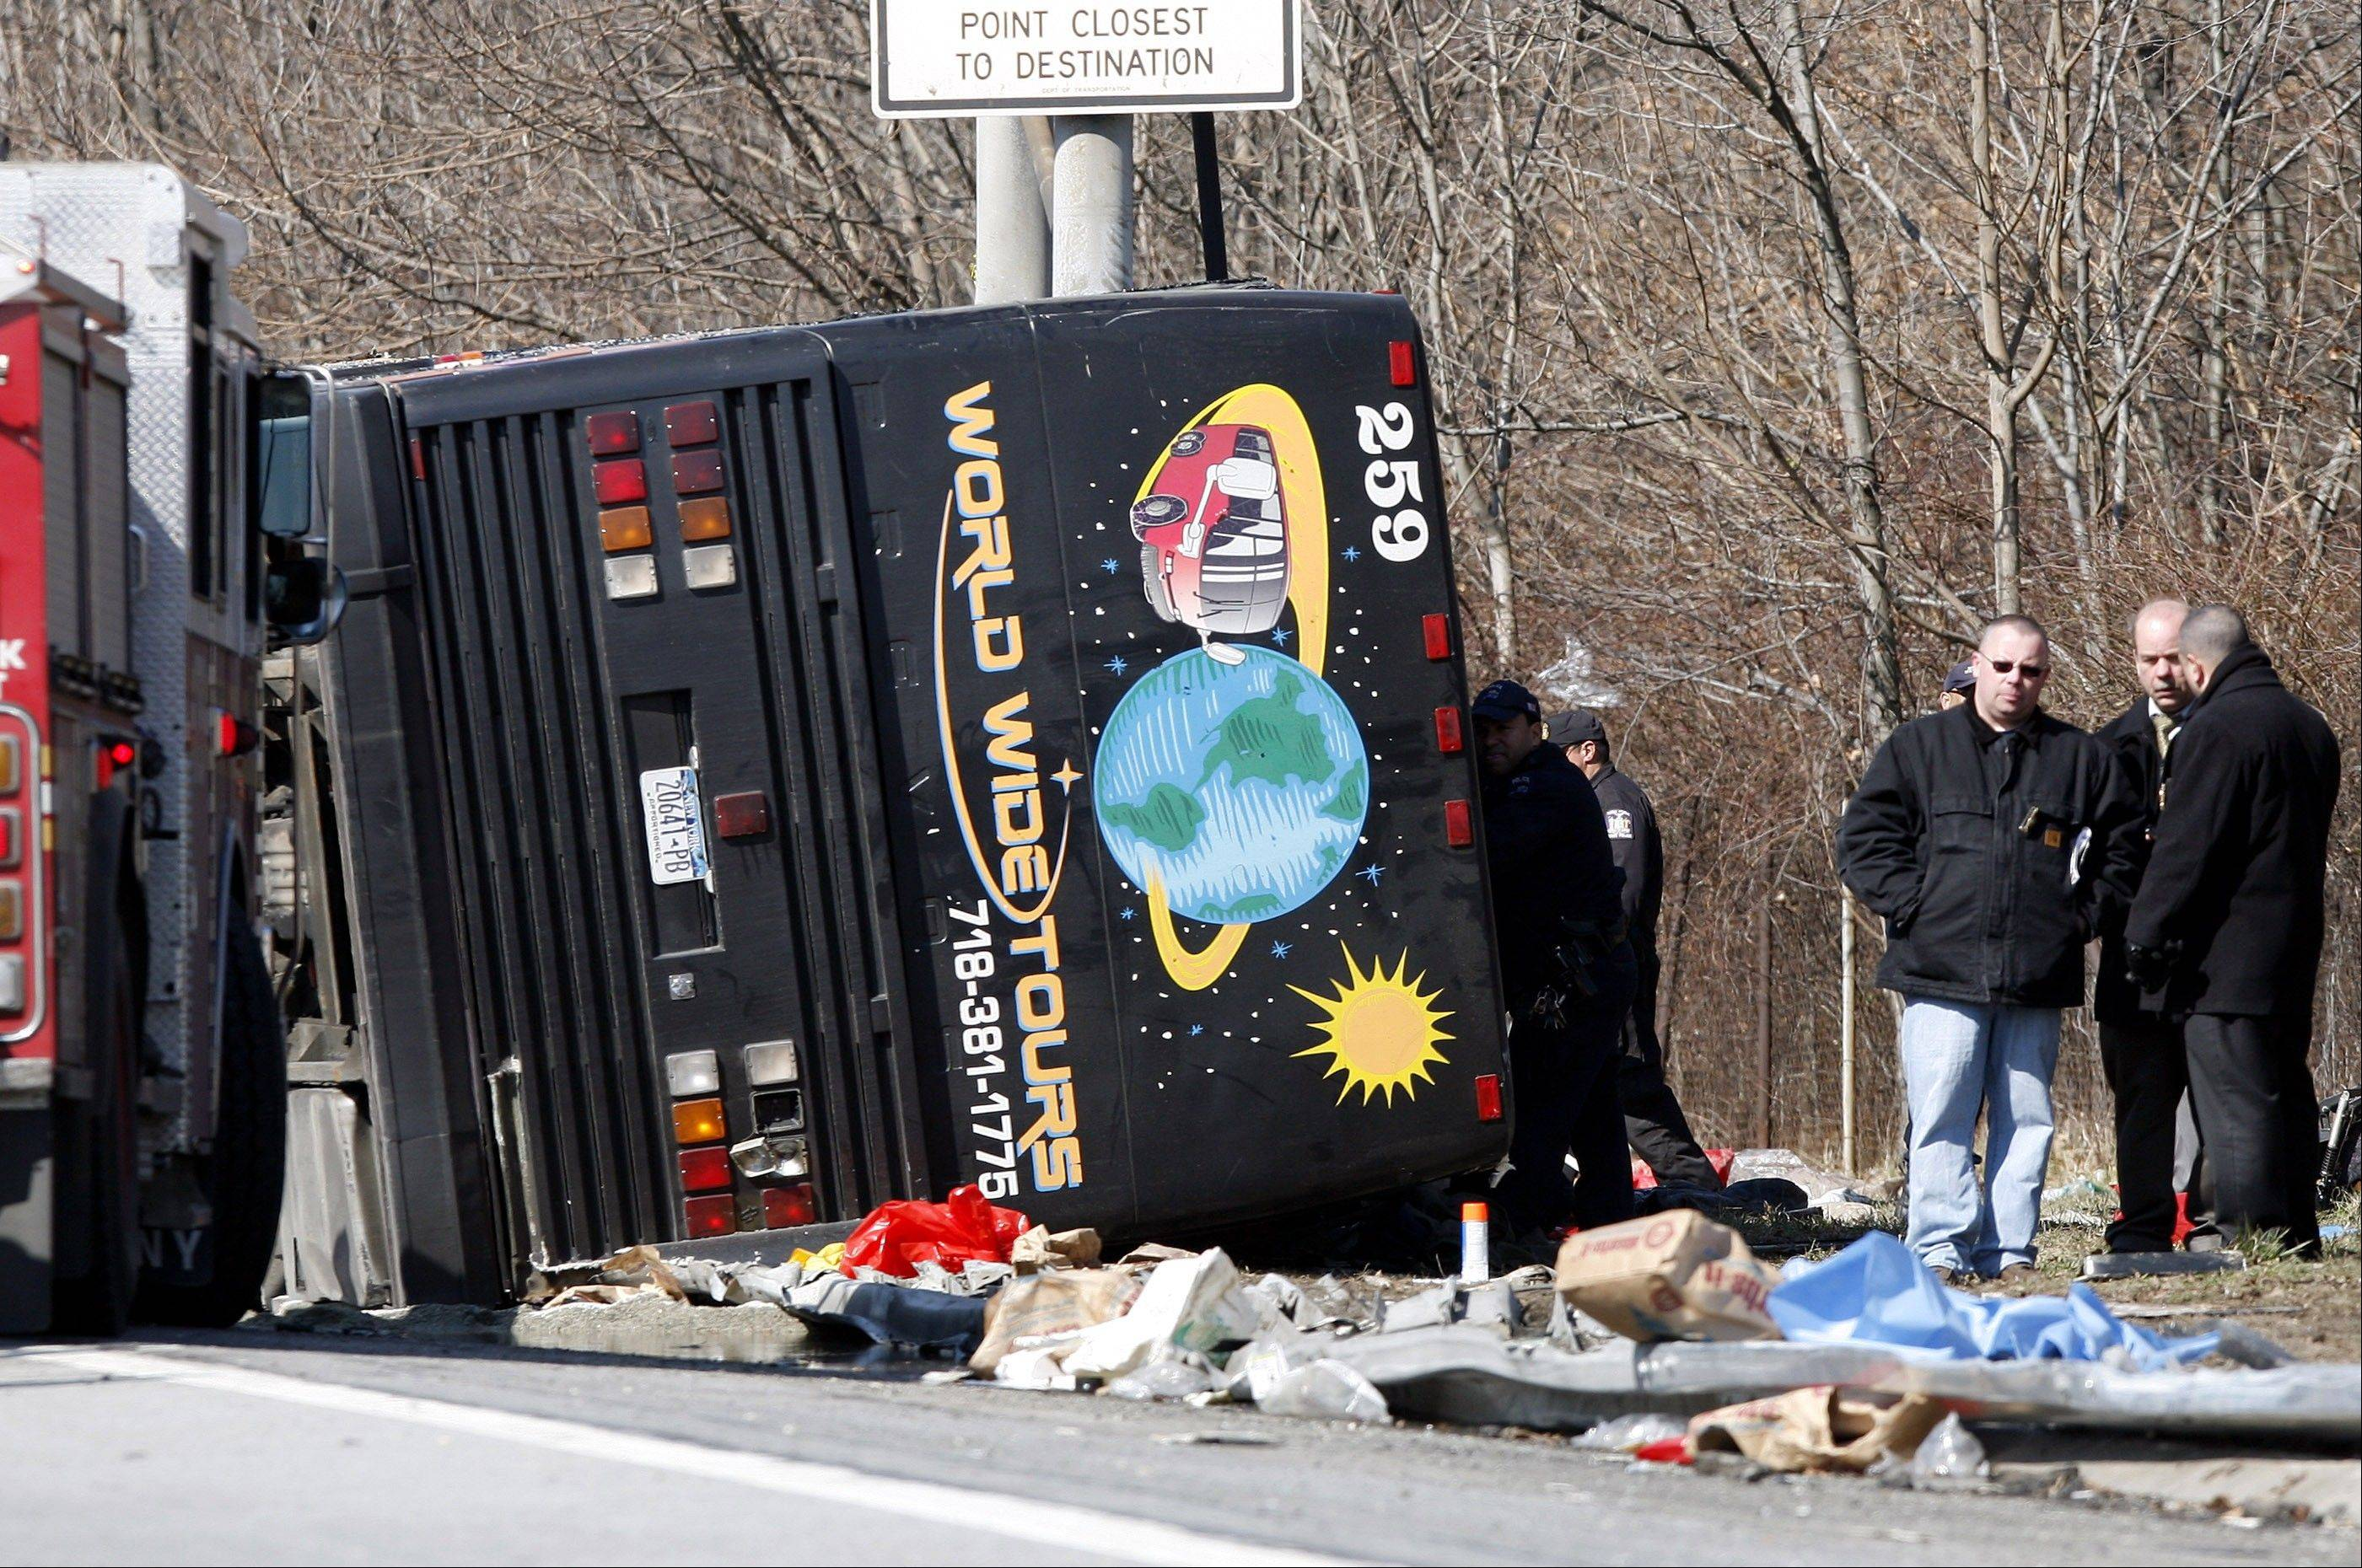 Emergency personnel investigate the scene of a bus crash on Interstate 95 in the Bronx borough of New York. Prosecutors in New York alleged the driver, Ophadell Williams, was all but asleep at the wheel, but a jury decided there was not enough proof to convict him.